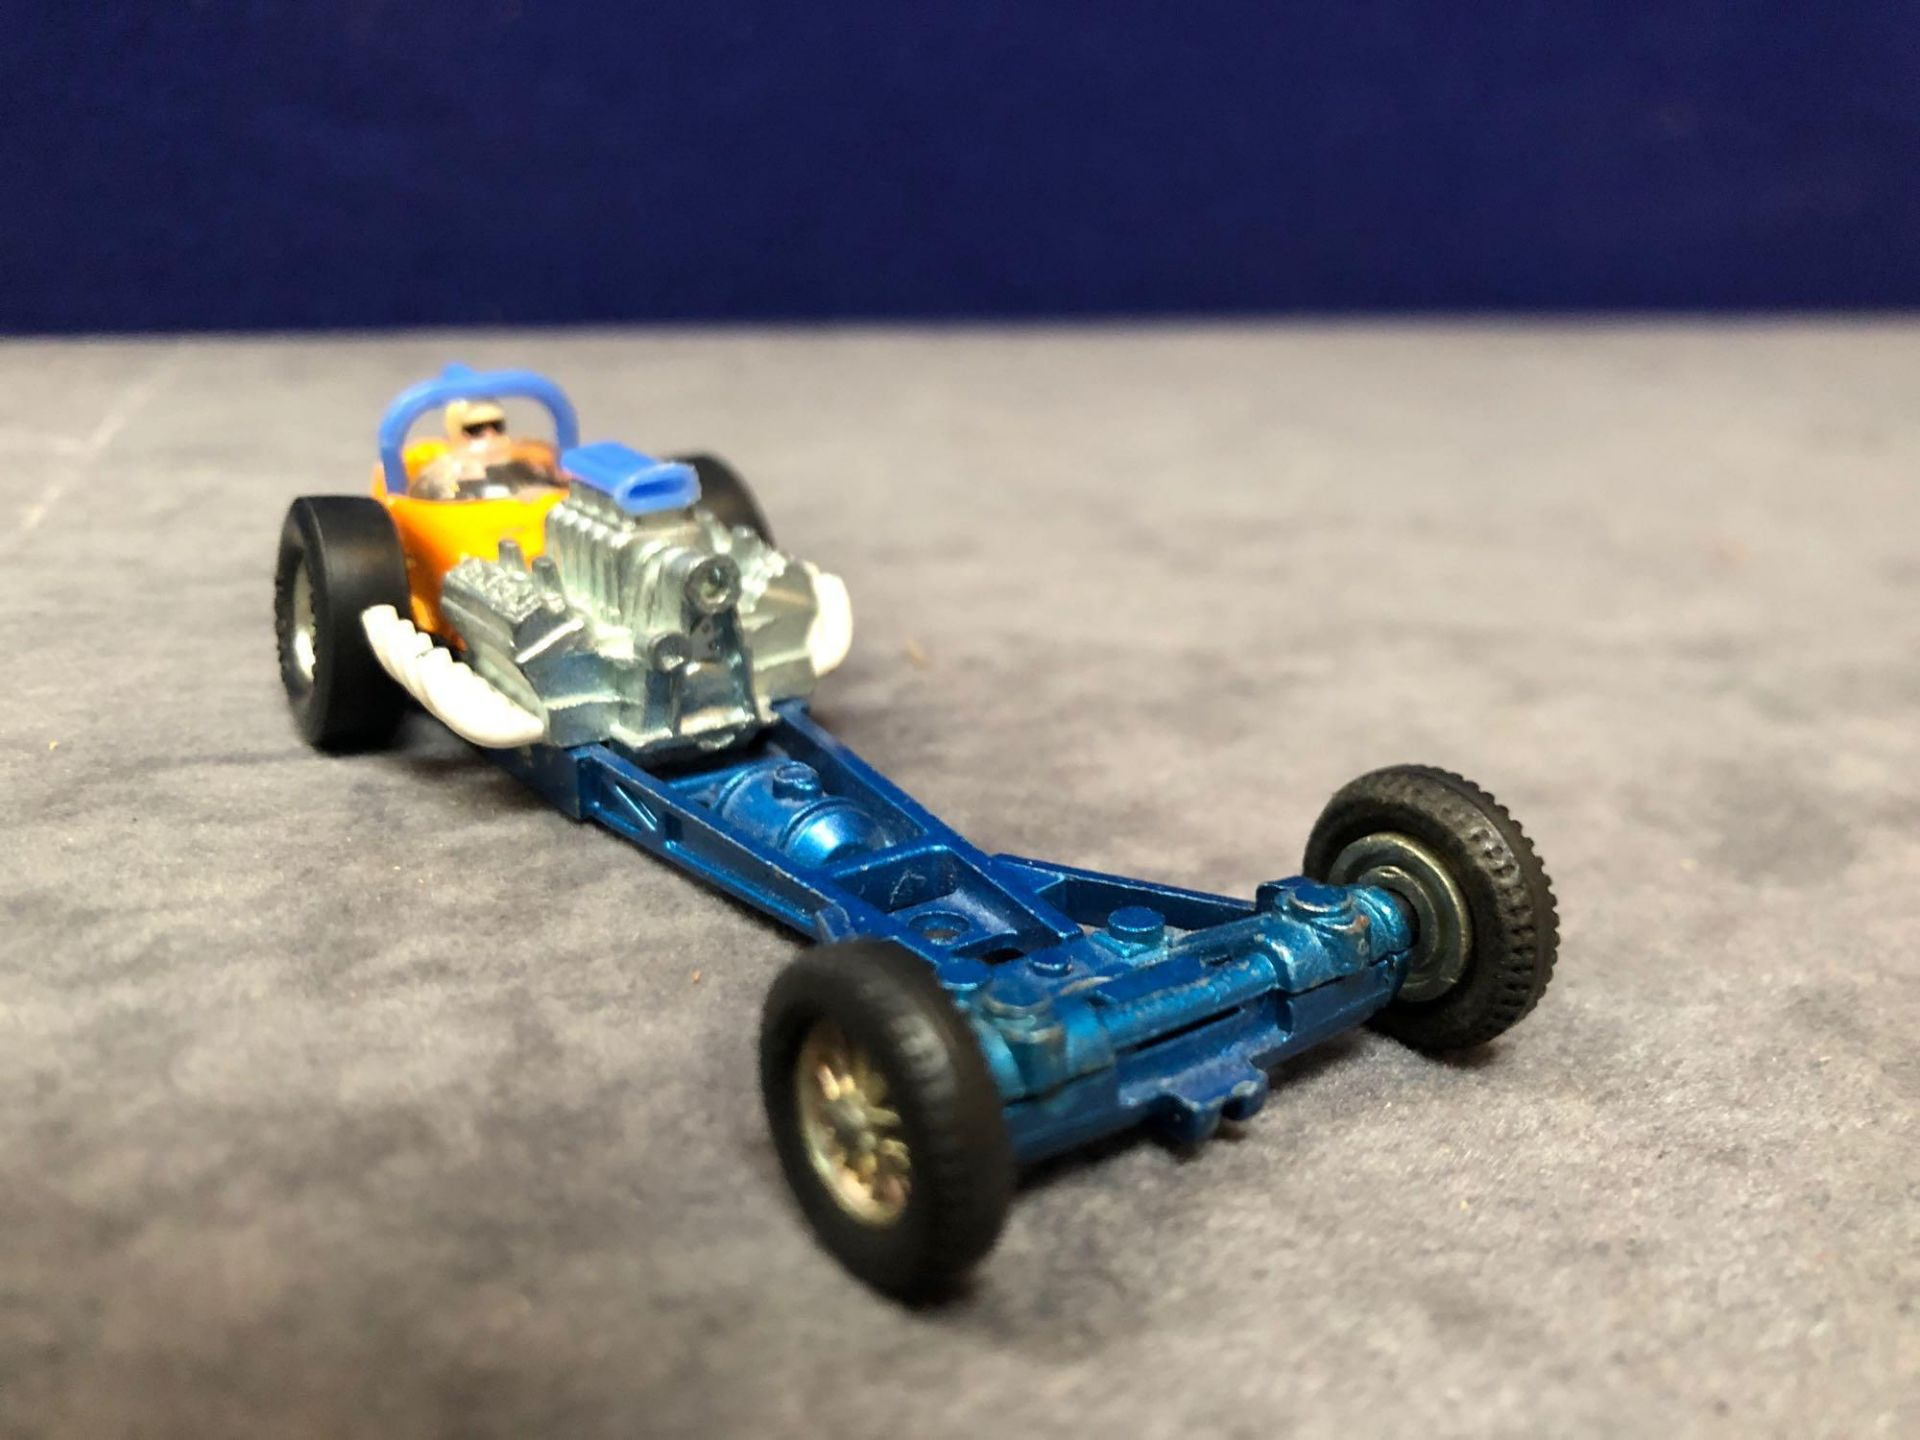 Dinky #228 Super Sprinter Blue And Orange - Exposed Engine And Speed Wheels. Very God Model In A - Image 2 of 4